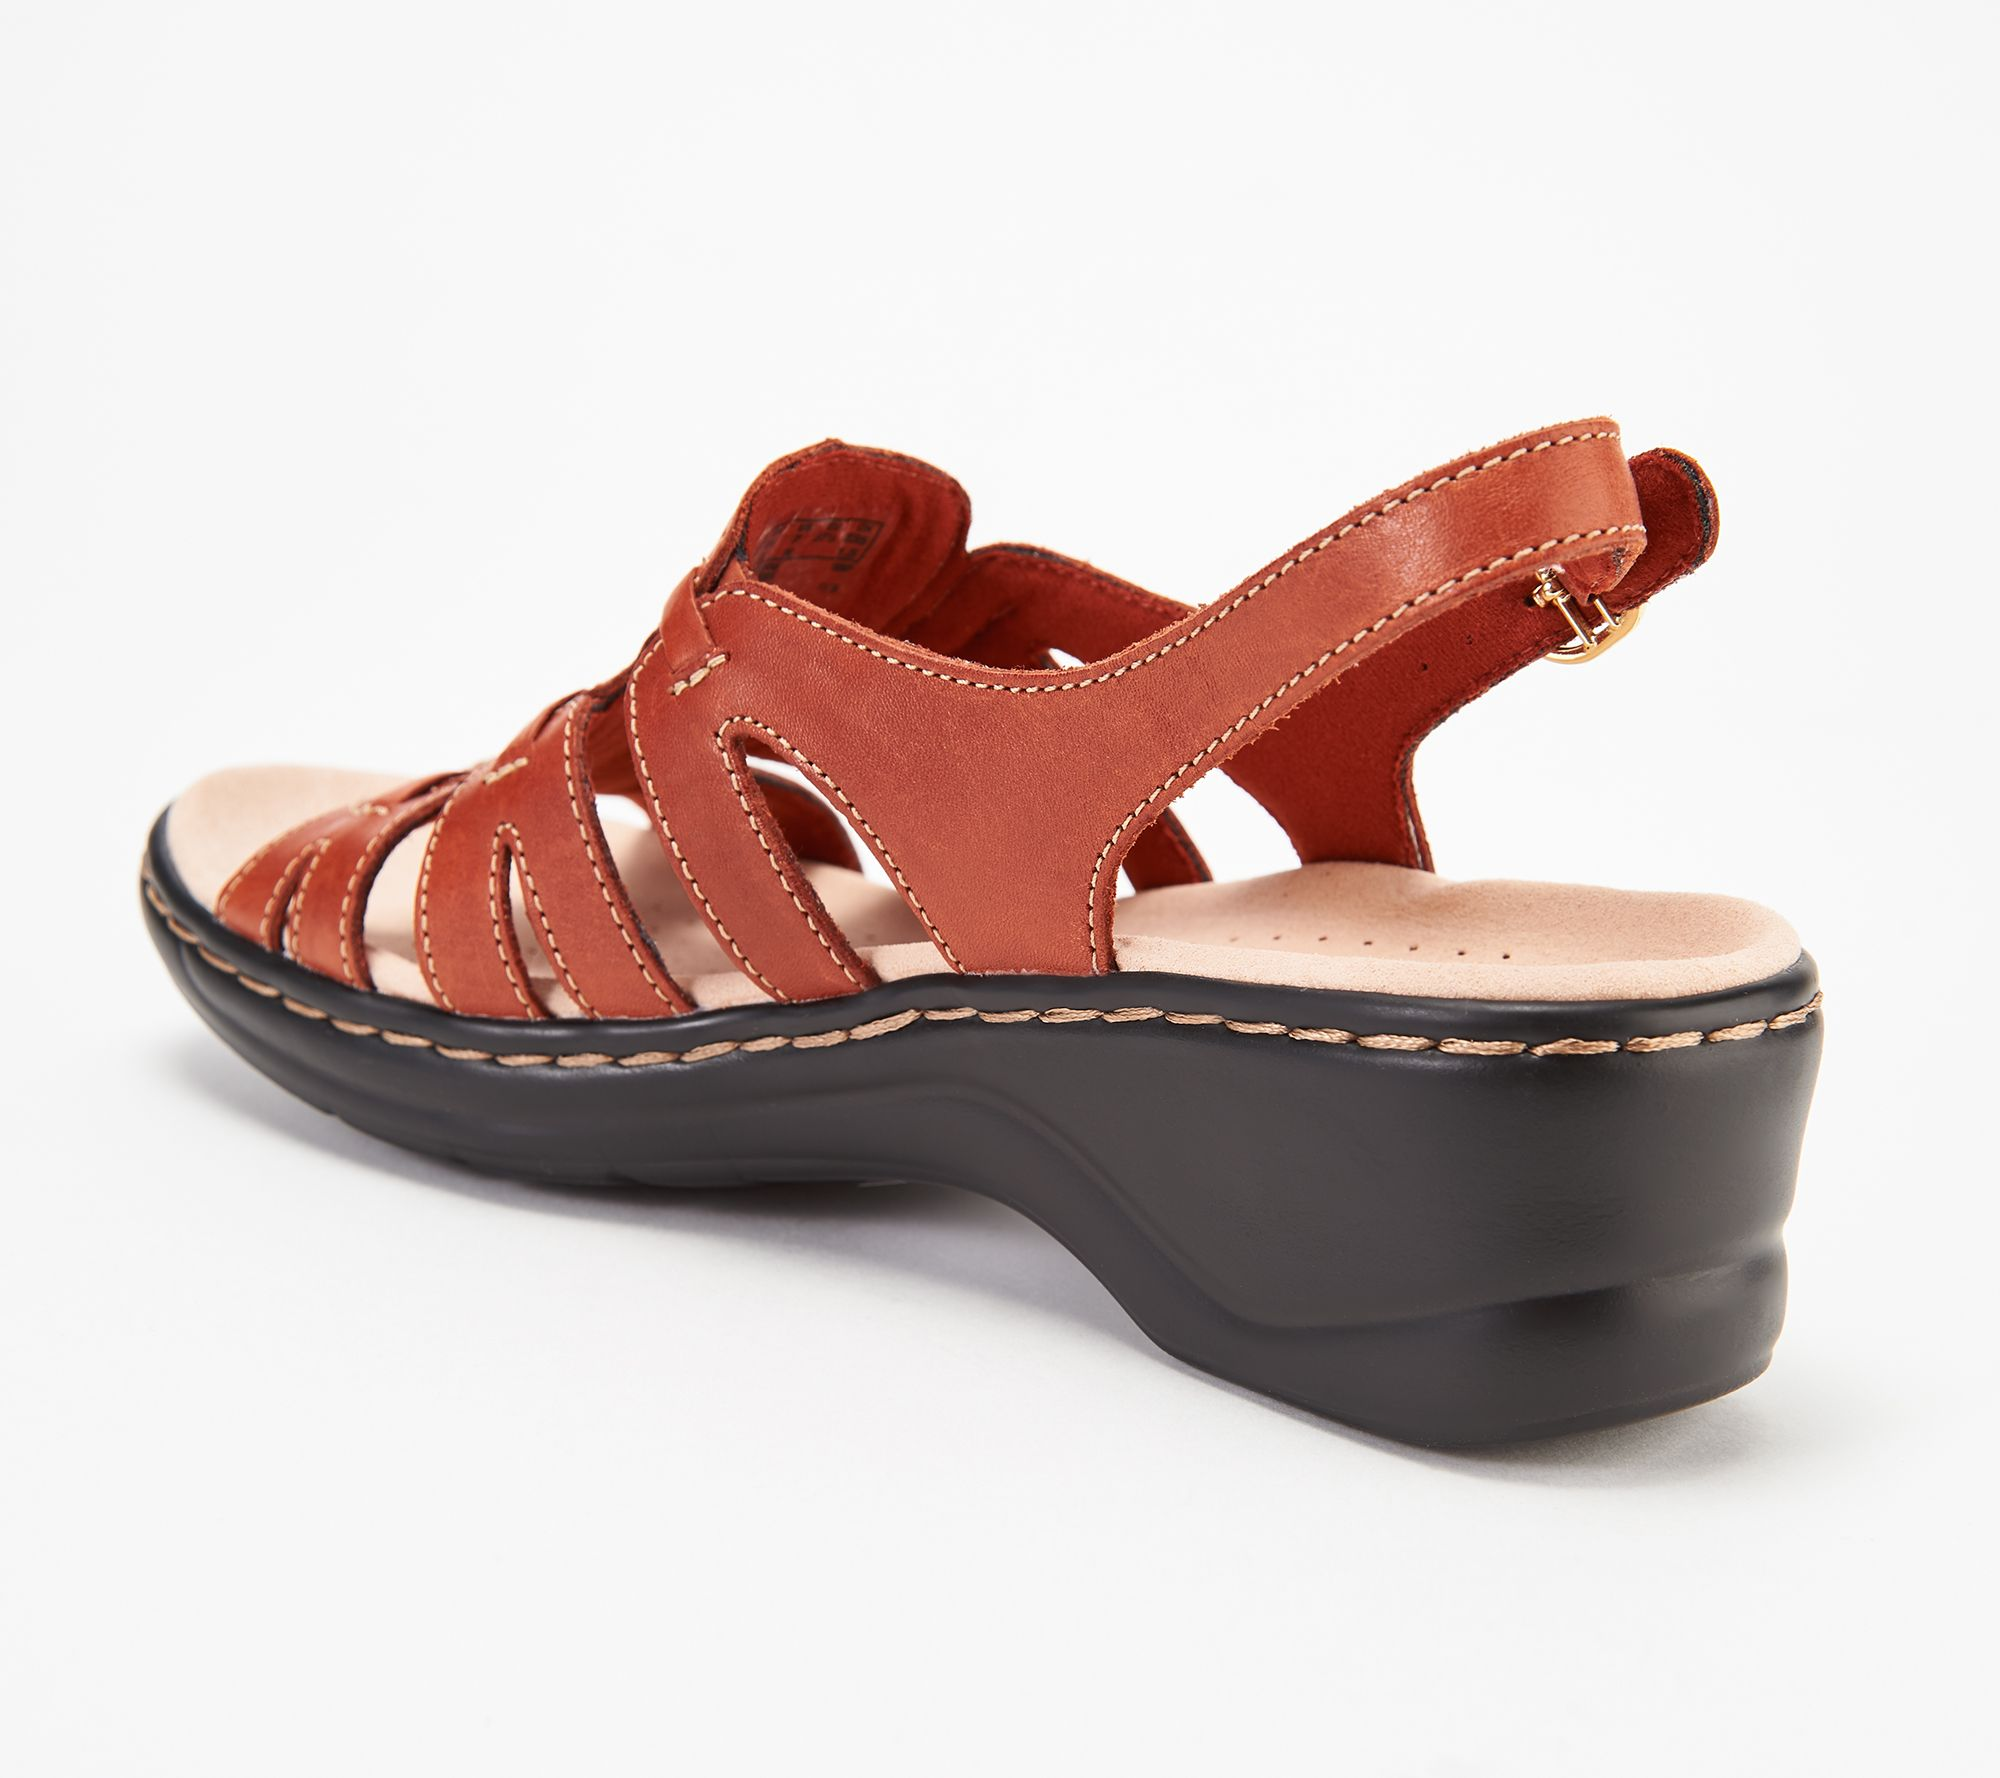 dd80b0ce5a5e5 Clarks Collection Leather Sandals - Lexi Marigold - Page 1 — QVC.com